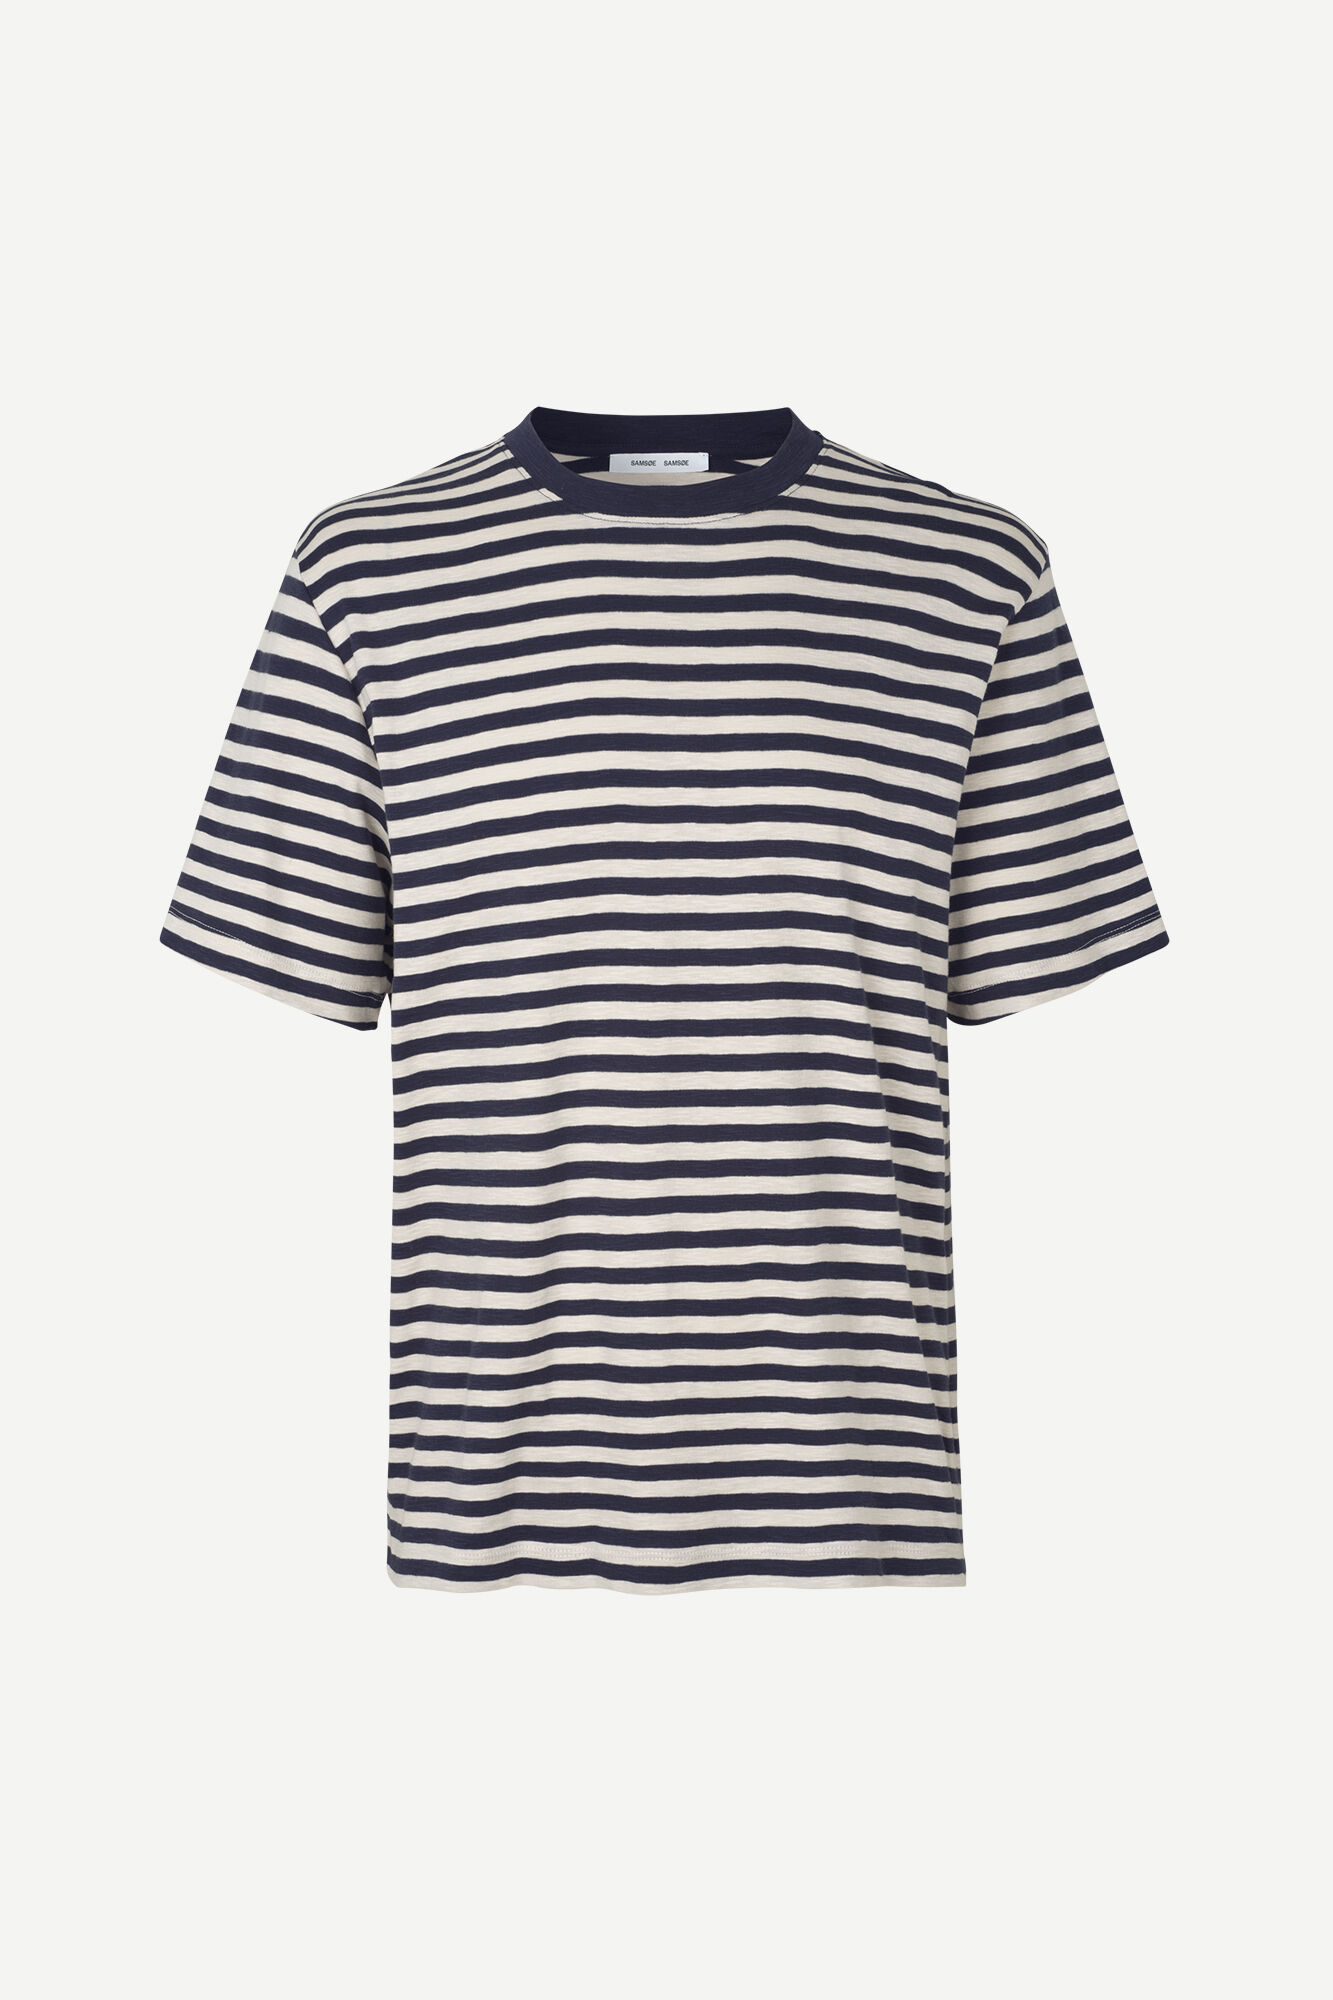 Saleby t-shirt st 11566